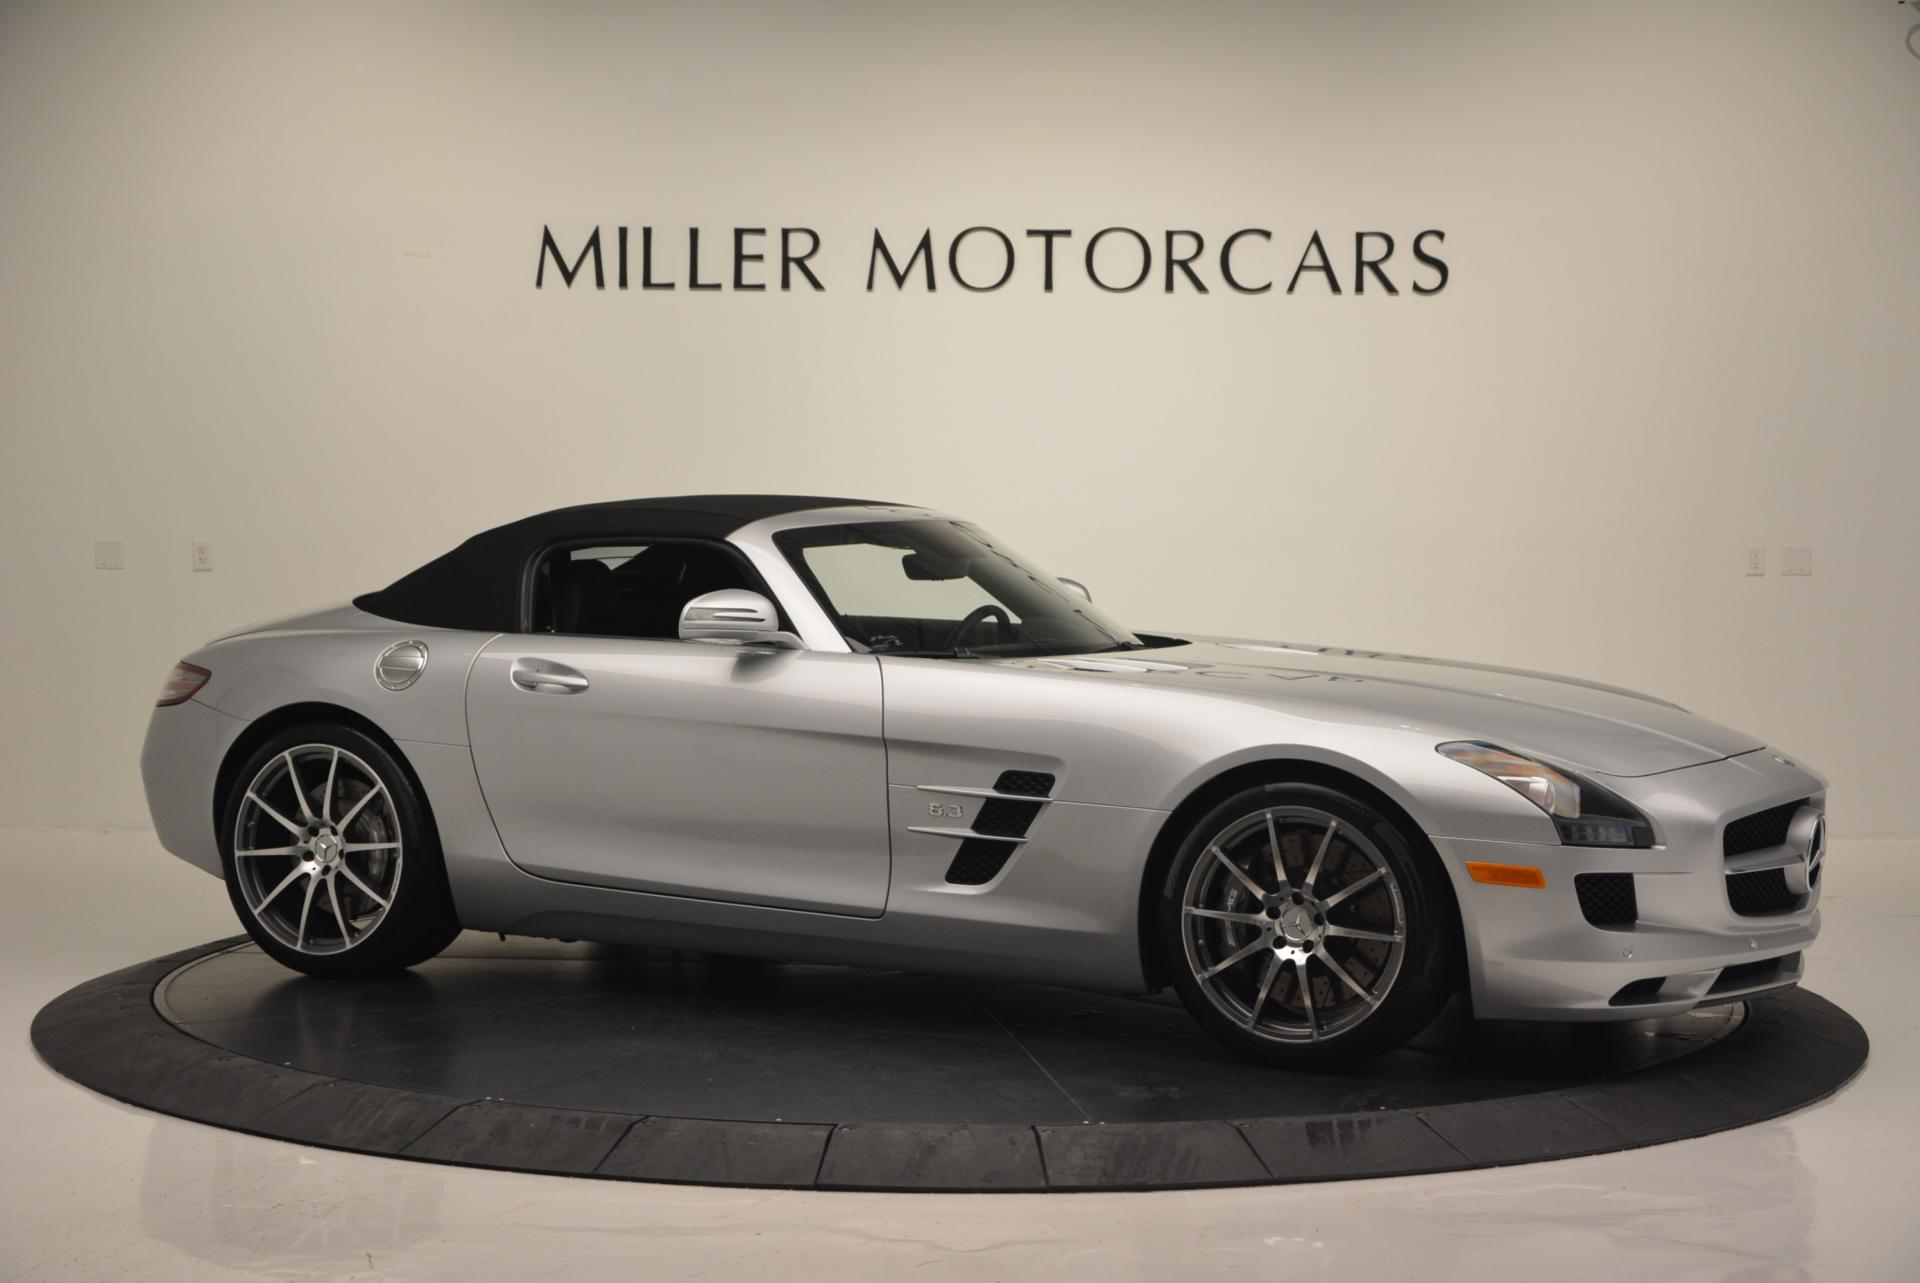 Used 2012 Mercedes Benz SLS AMG  For Sale In Greenwich, CT. Alfa Romeo of Greenwich, 7058 517_p22